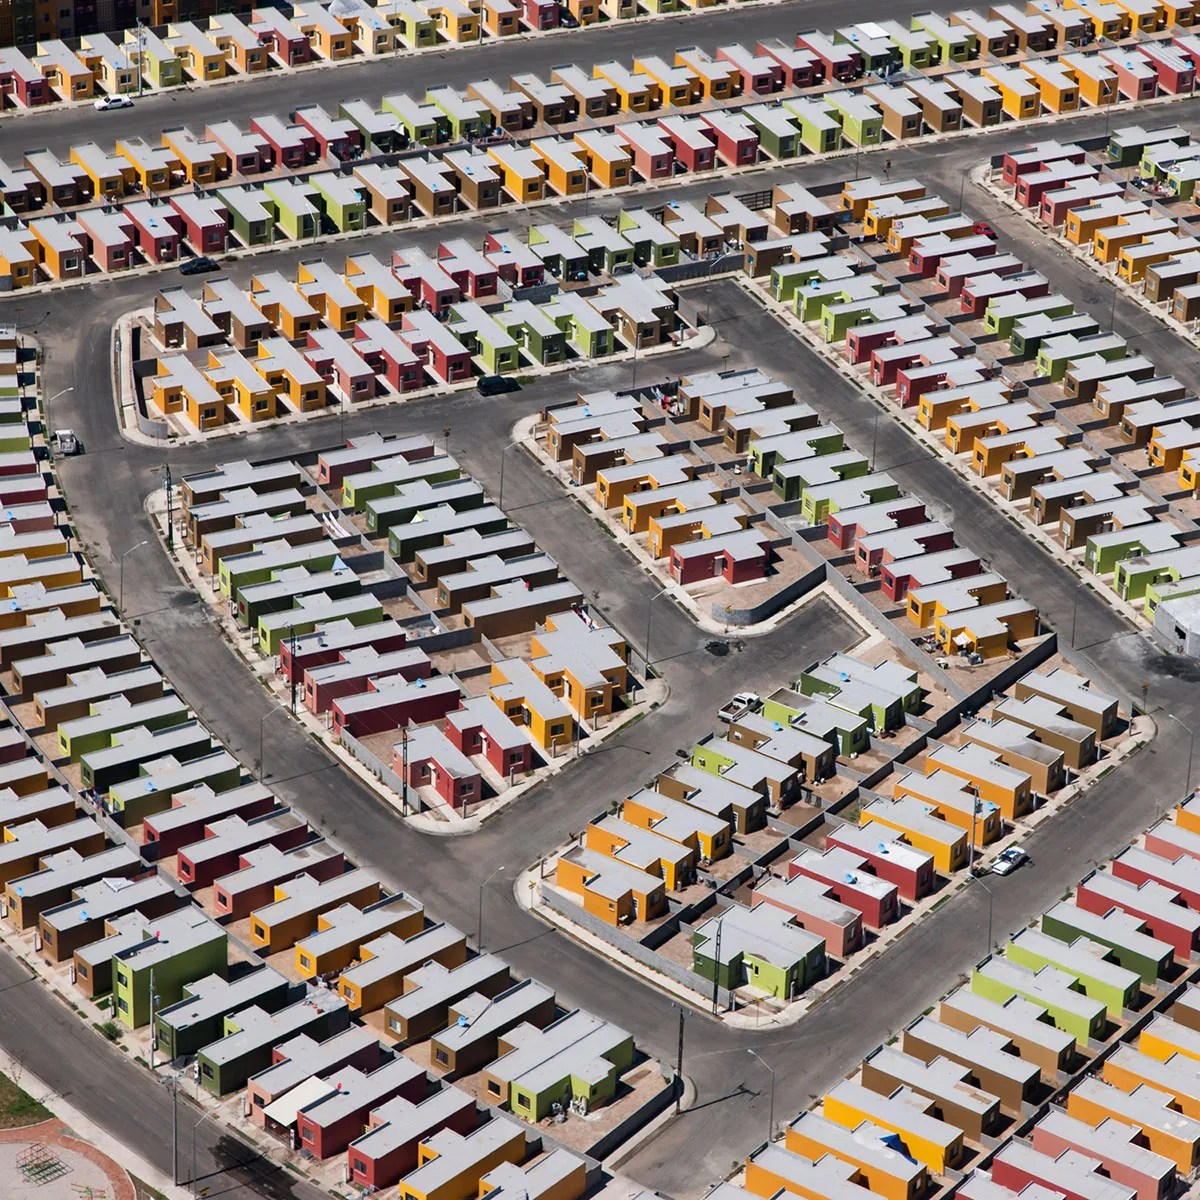 Aerial Views of Mexico's Dystopian Housing Developments